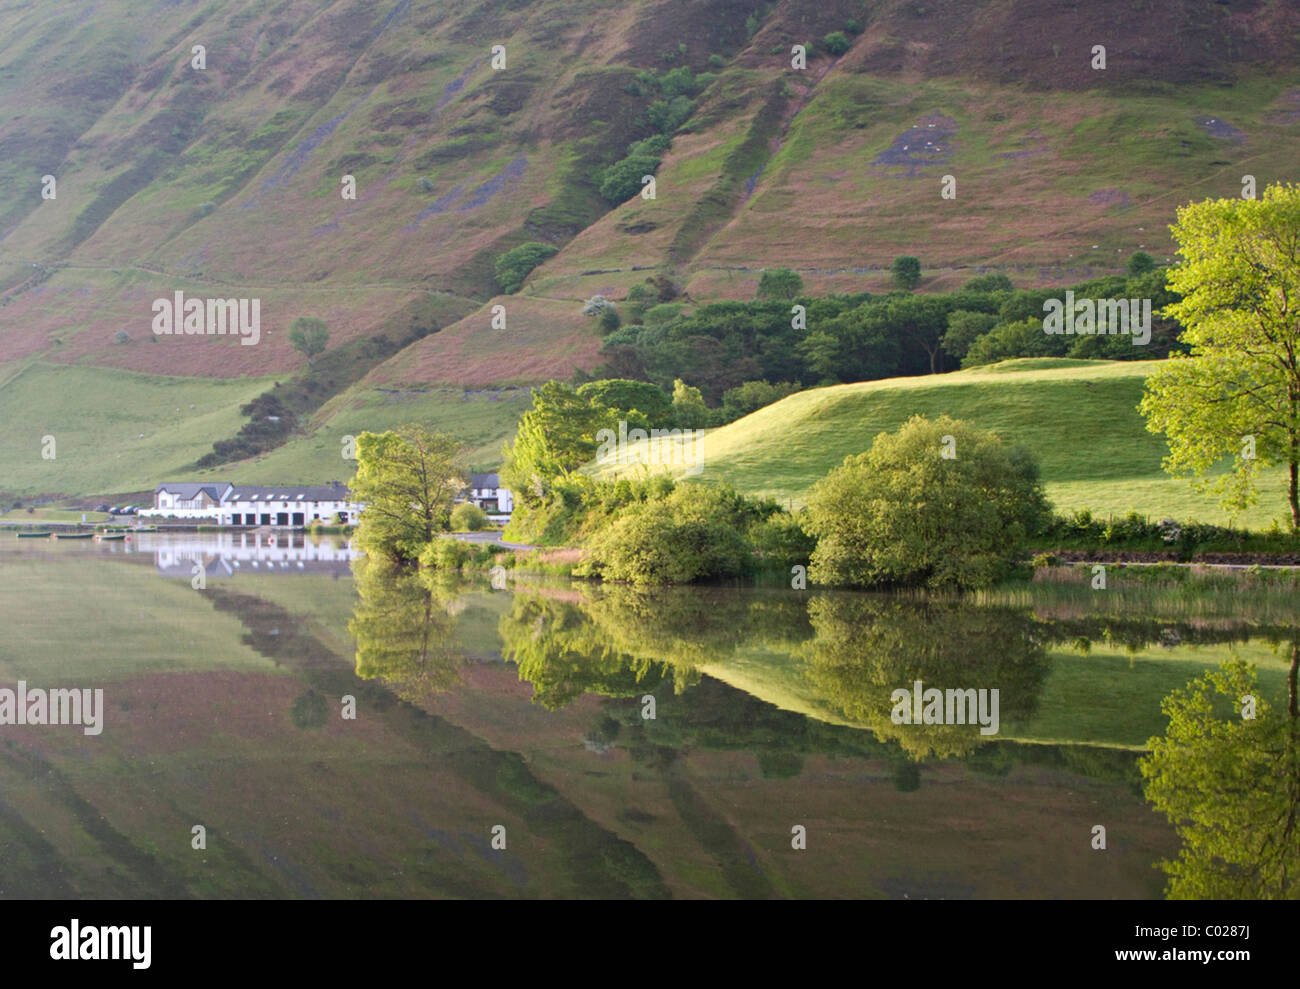 Tal-y-Llyn and the Tynycornel Hotel - Stock Image